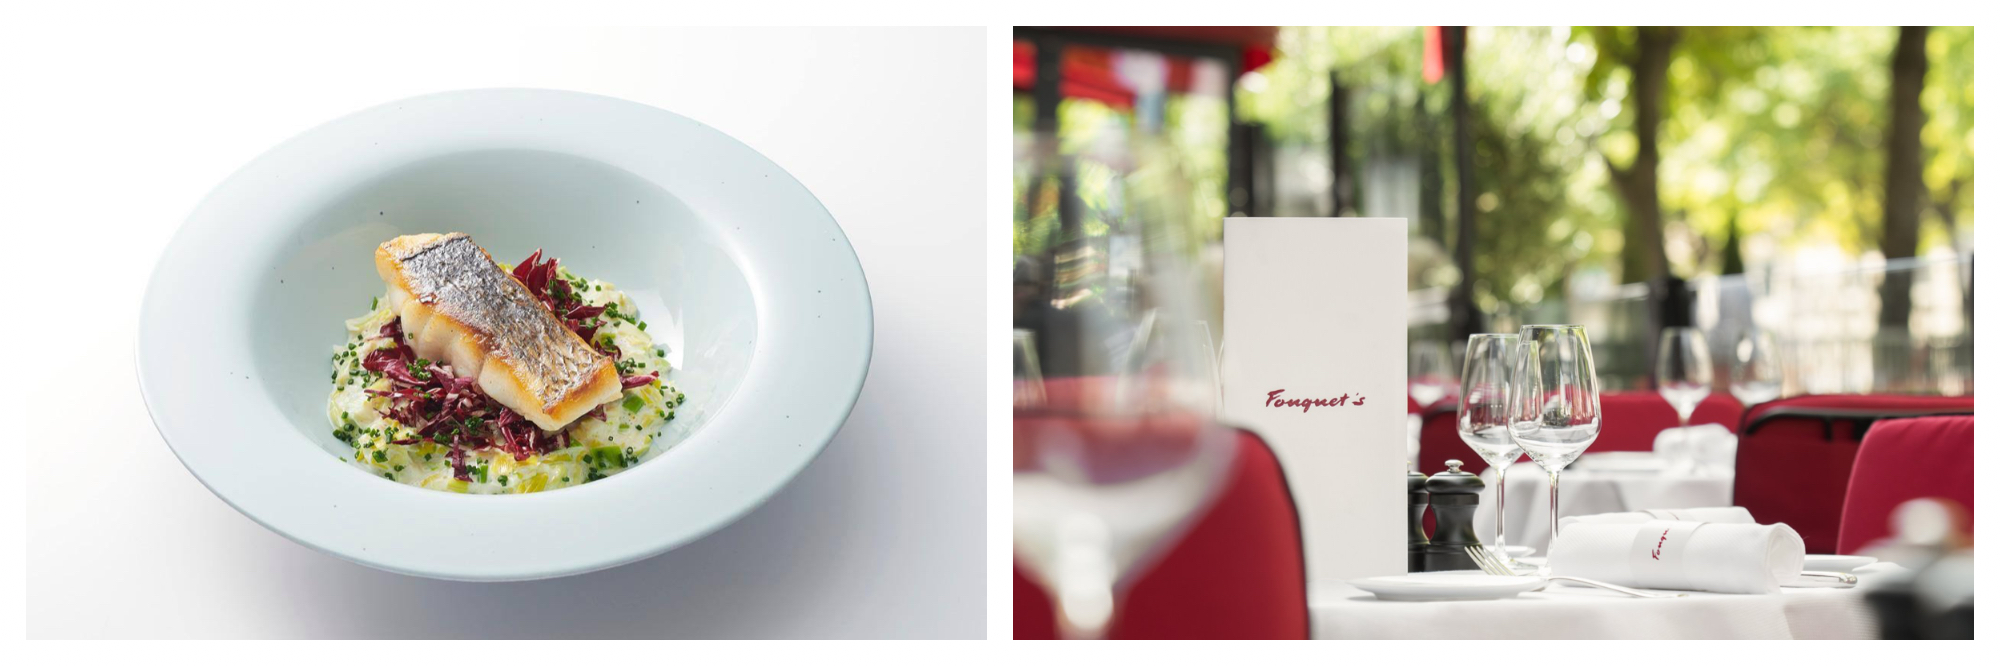 A white dish with seared salmon on top of salad (left). A table covered with a white tablecloth with wine classes, white serviettes and red chairs with a menu for the restaurant Foquet's in Paris.